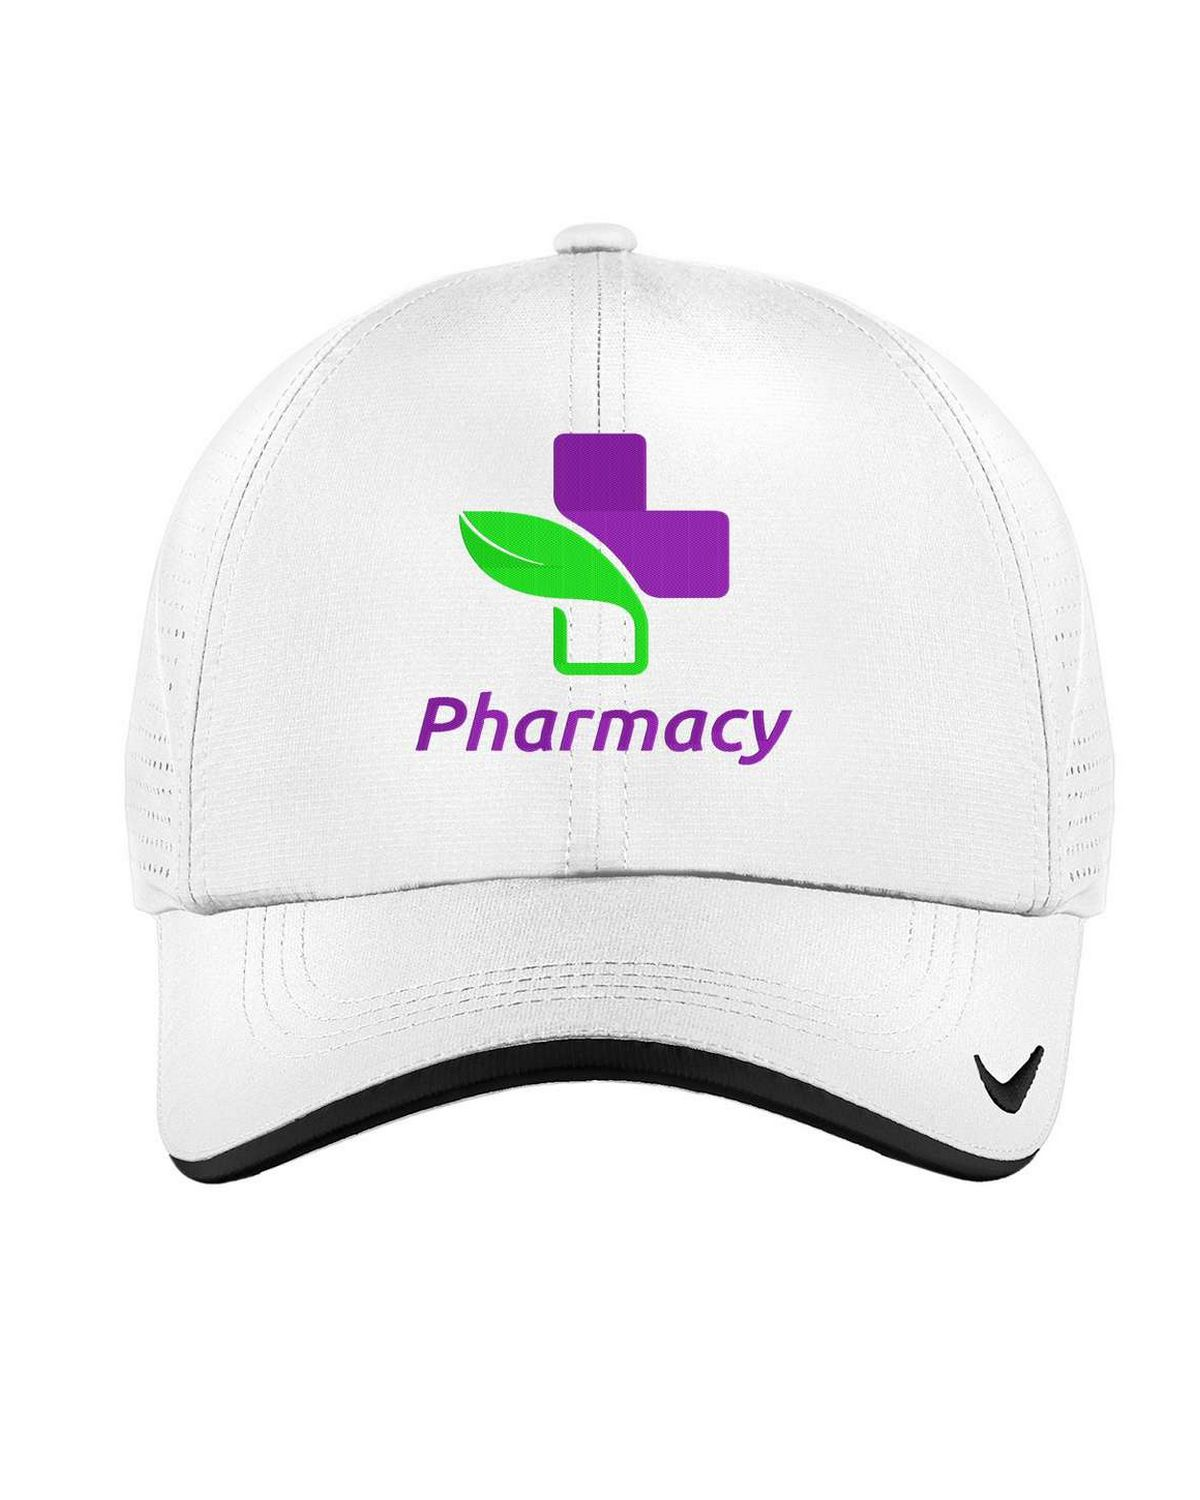 61cc2cb2b37 Buy Logo Embroidered Nike Golf 429467 Dri-FIT Swoosh Perforated Cap